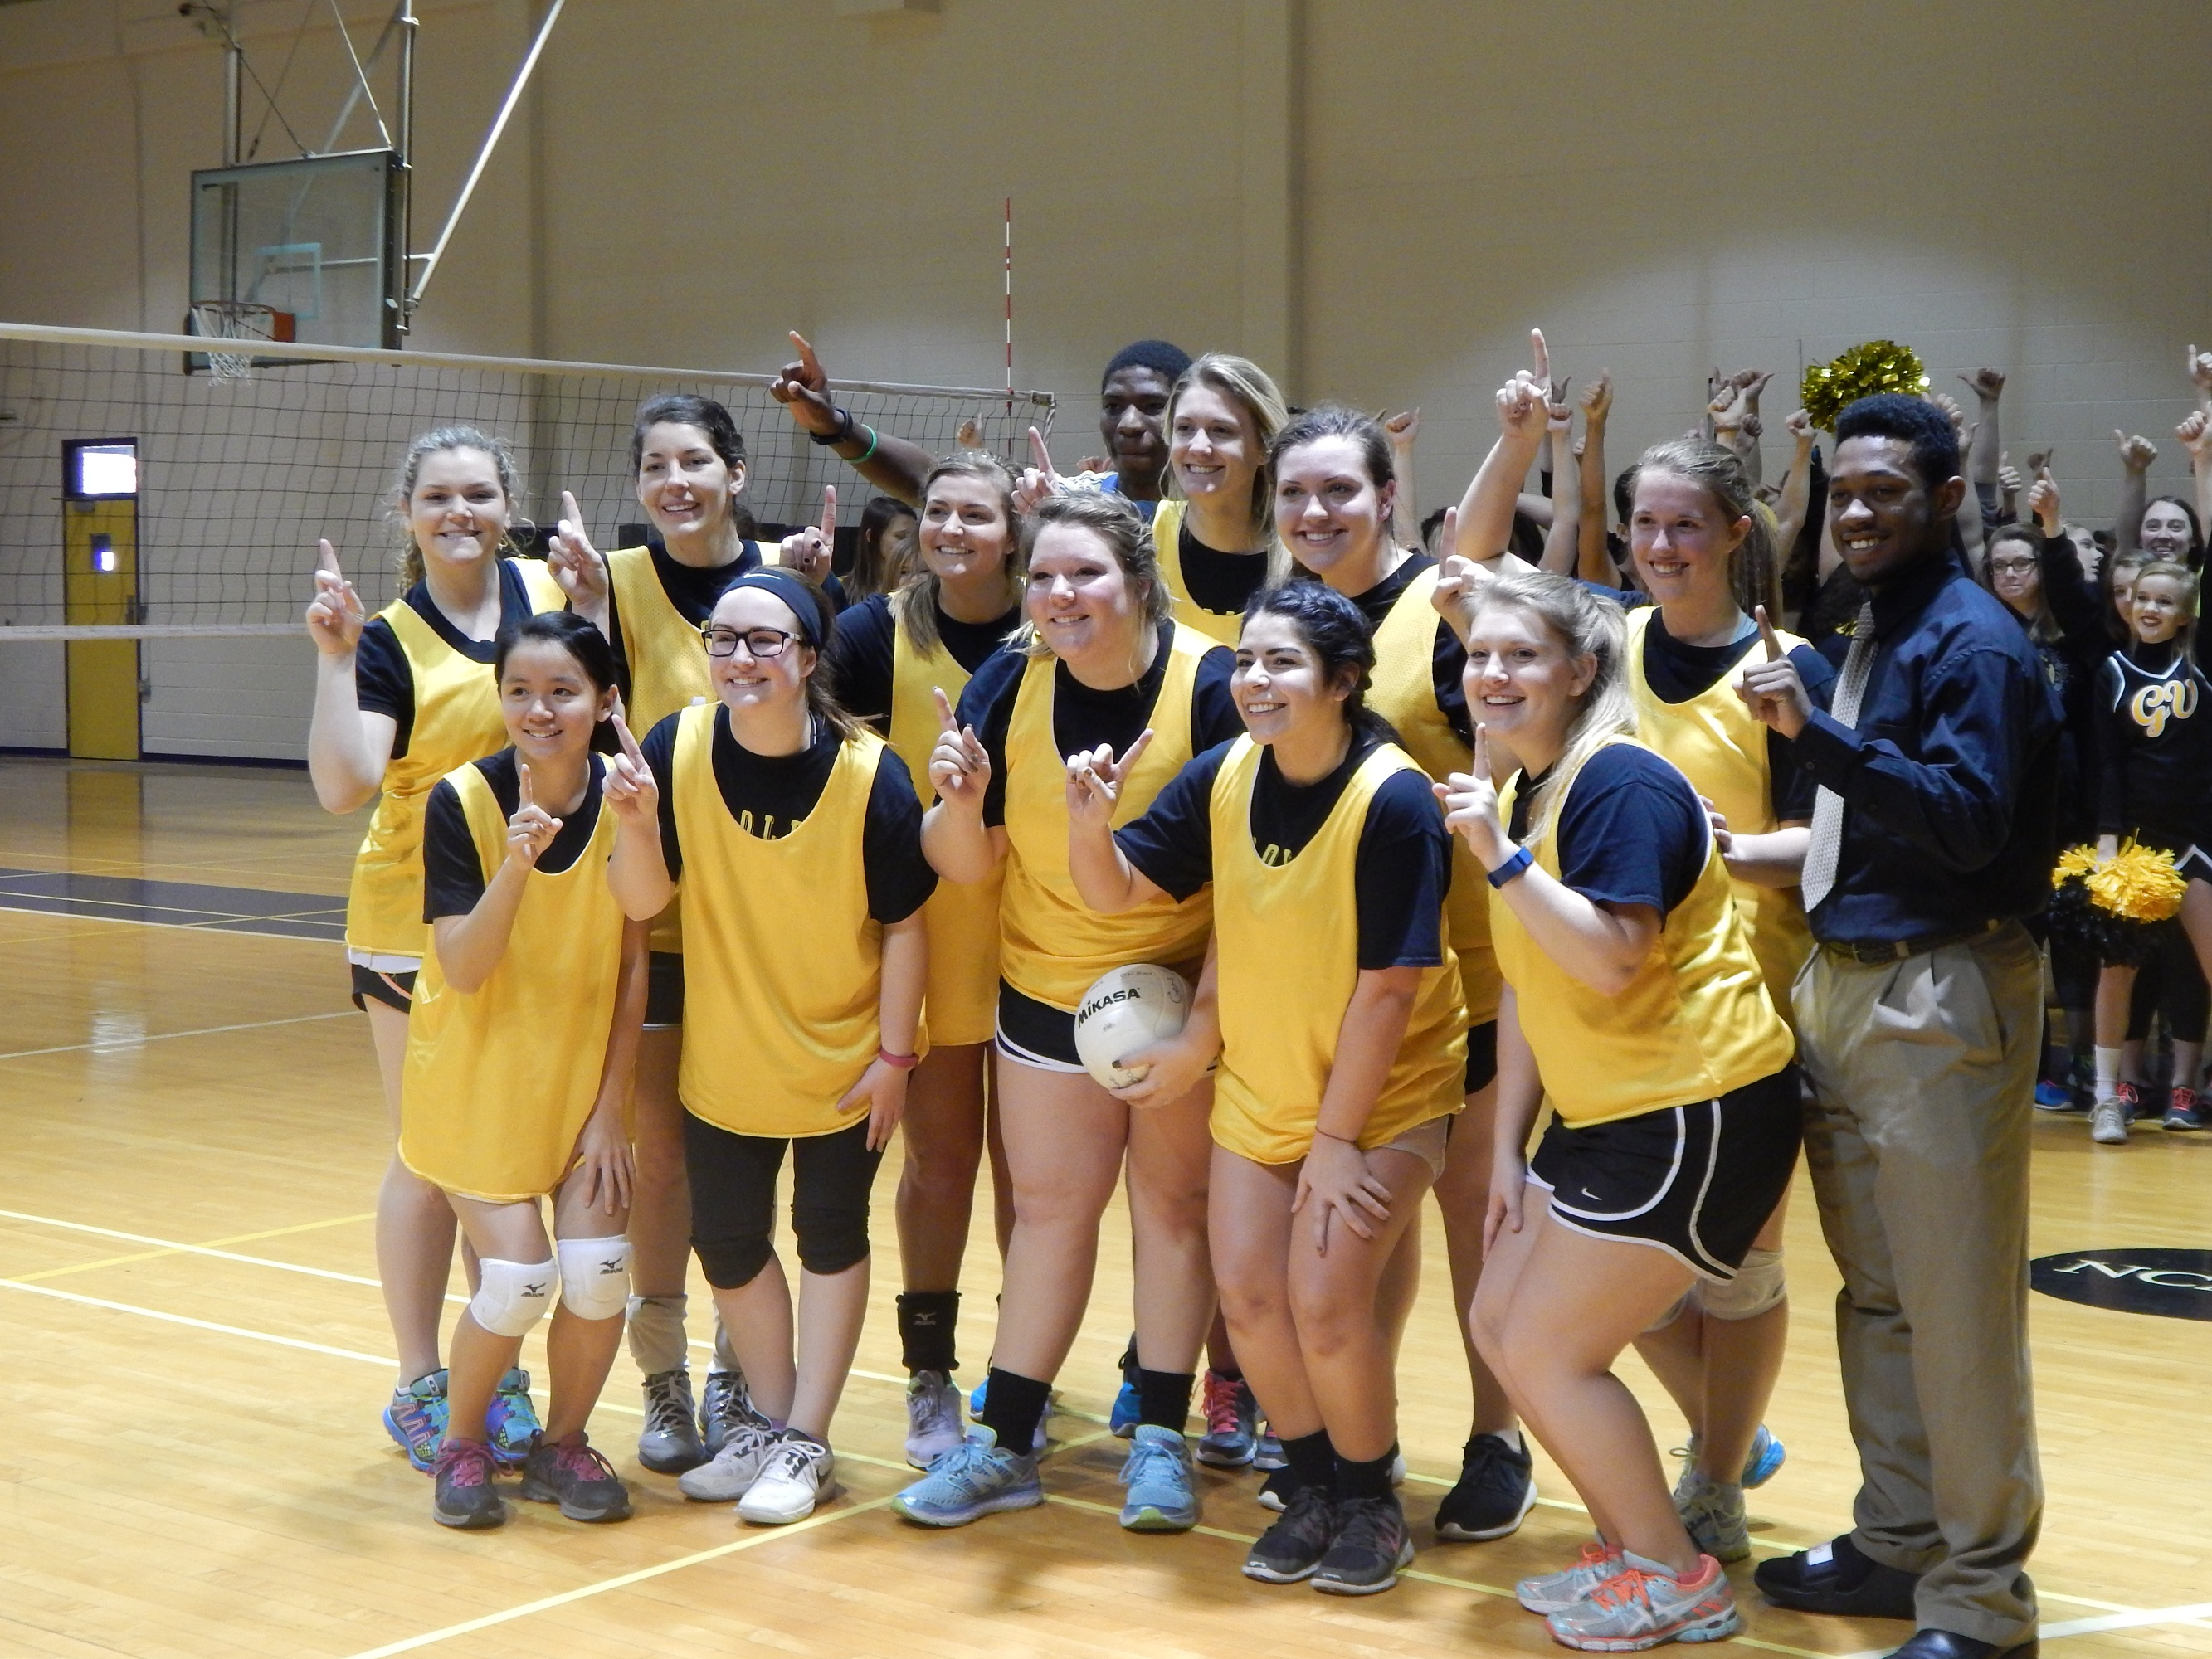 Golds net 25 points against Purples in volleyball game